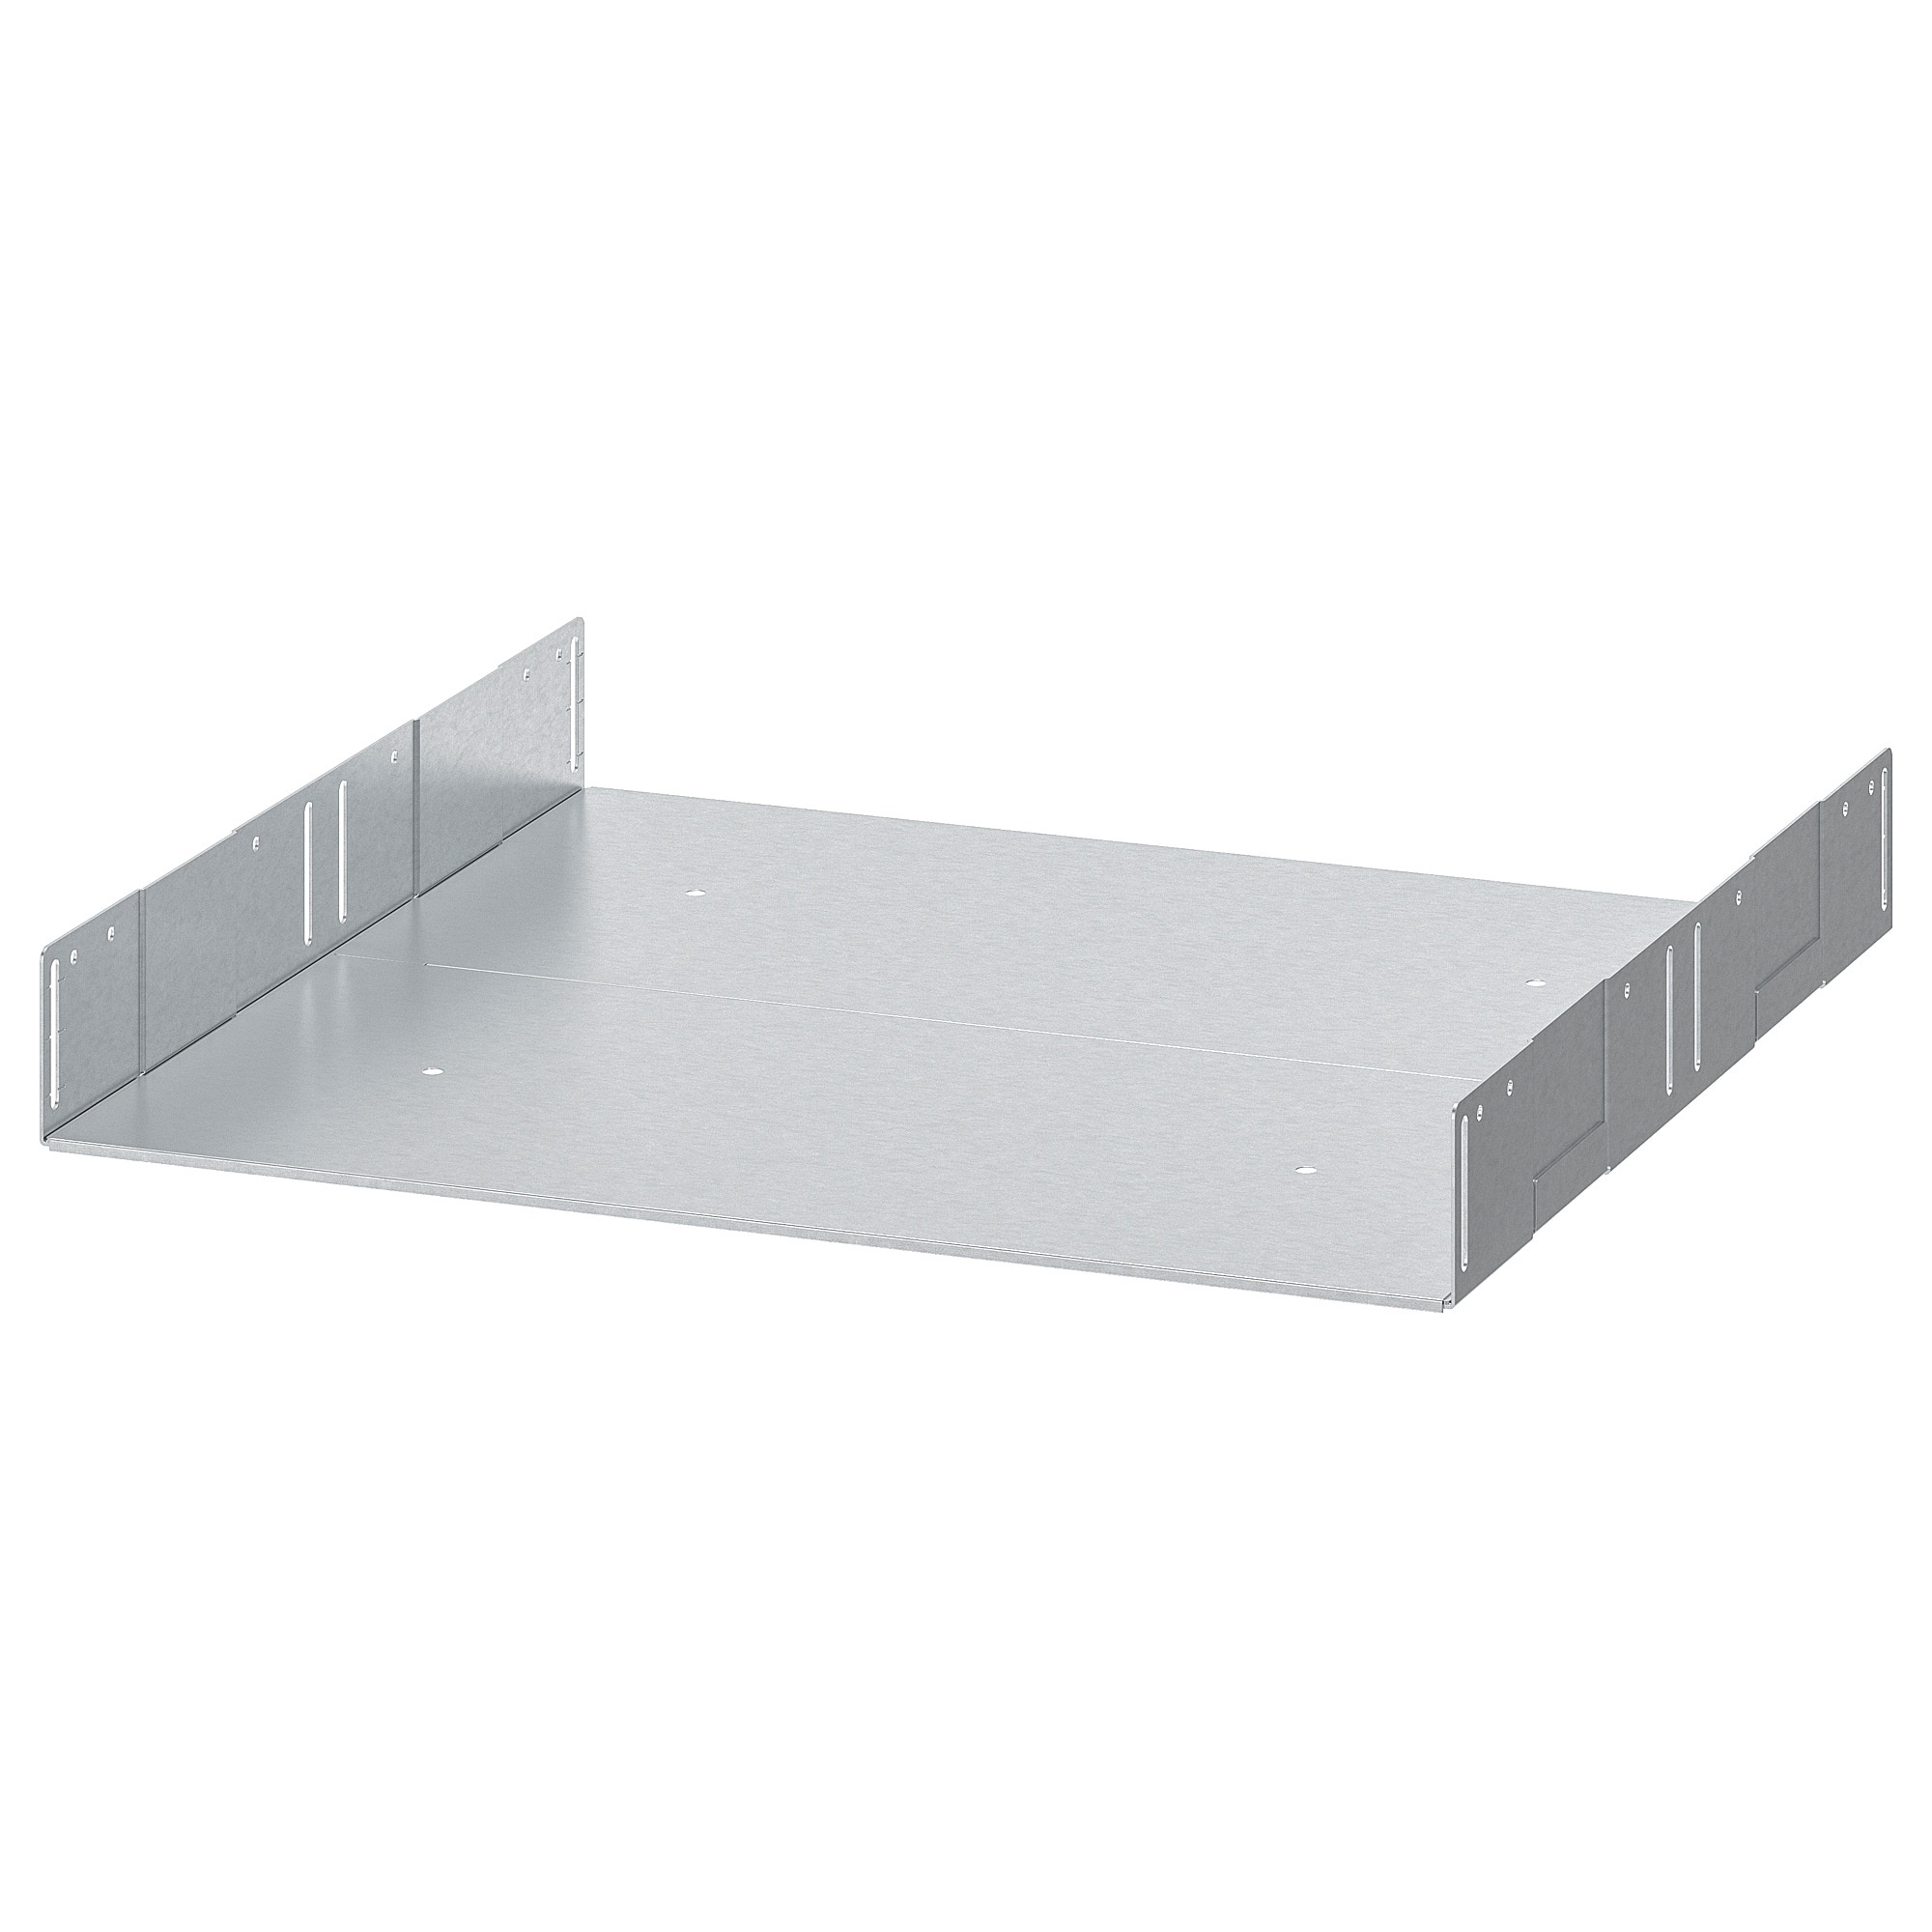 Ikea Faktum Assembly Instructions Bracket For Oven Utrusta Galvanised